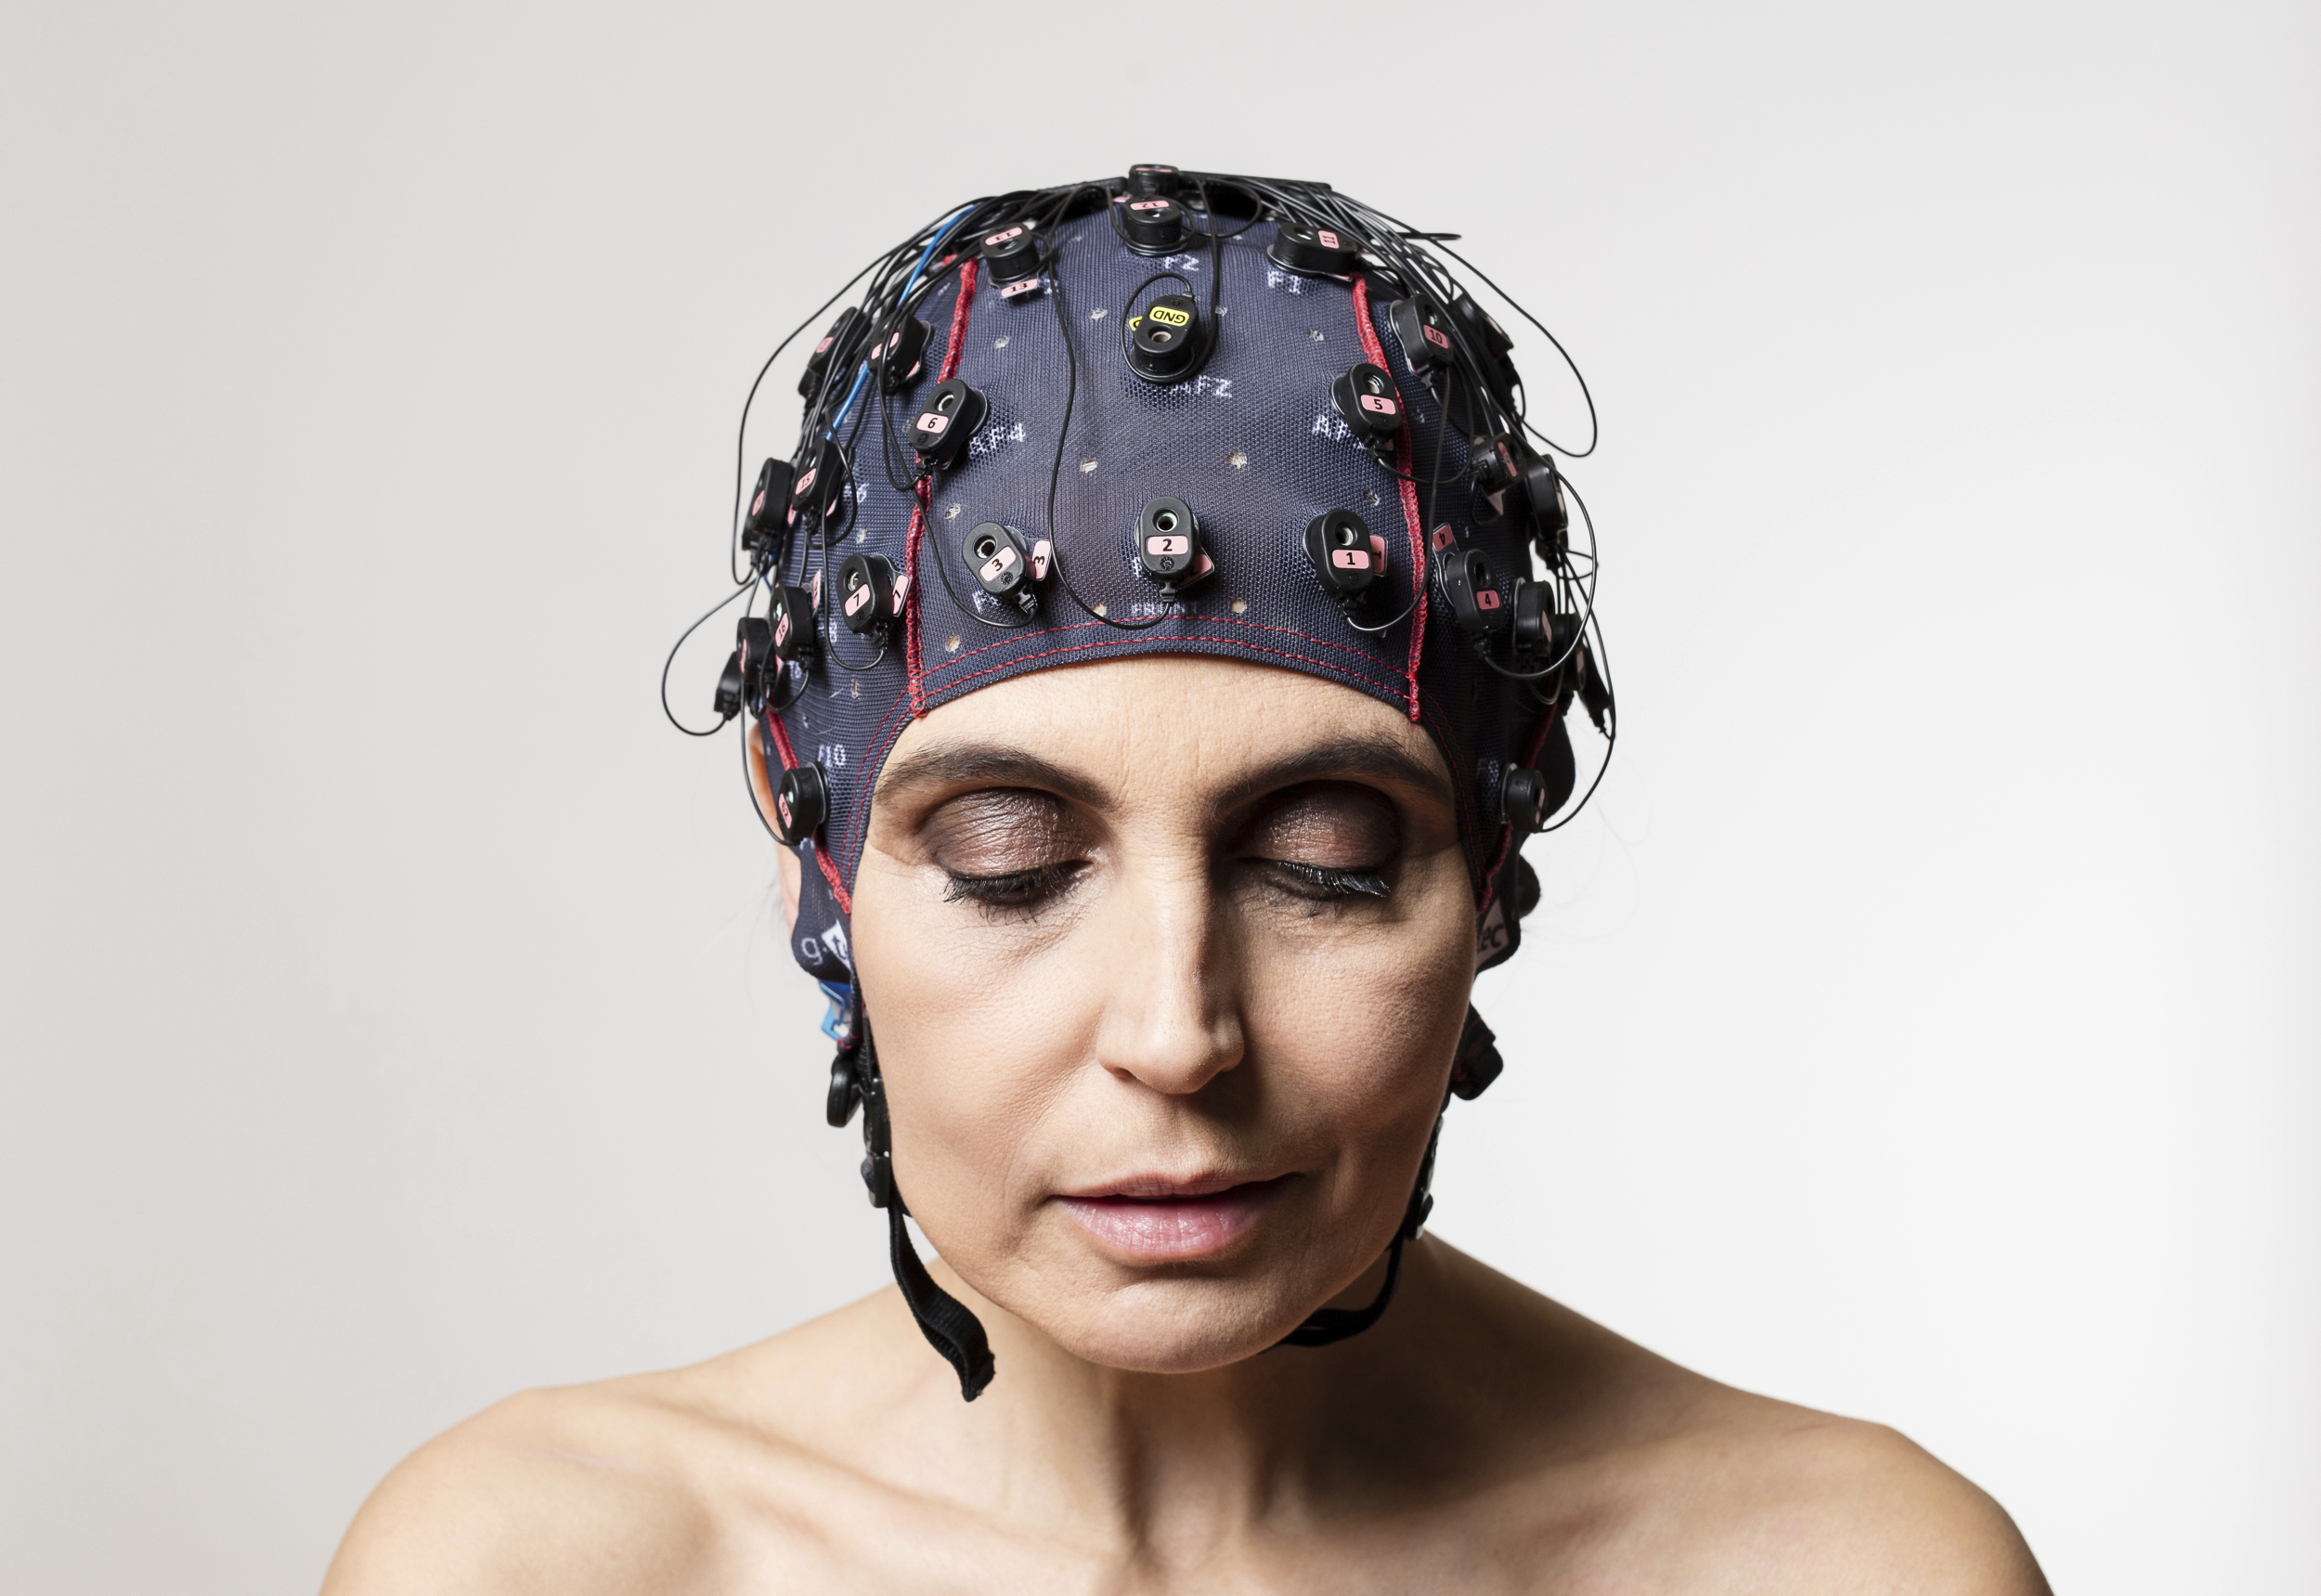 A woman equipped with a brain-computer interface that she is wearing as a bathing-suit-style cap on her head.